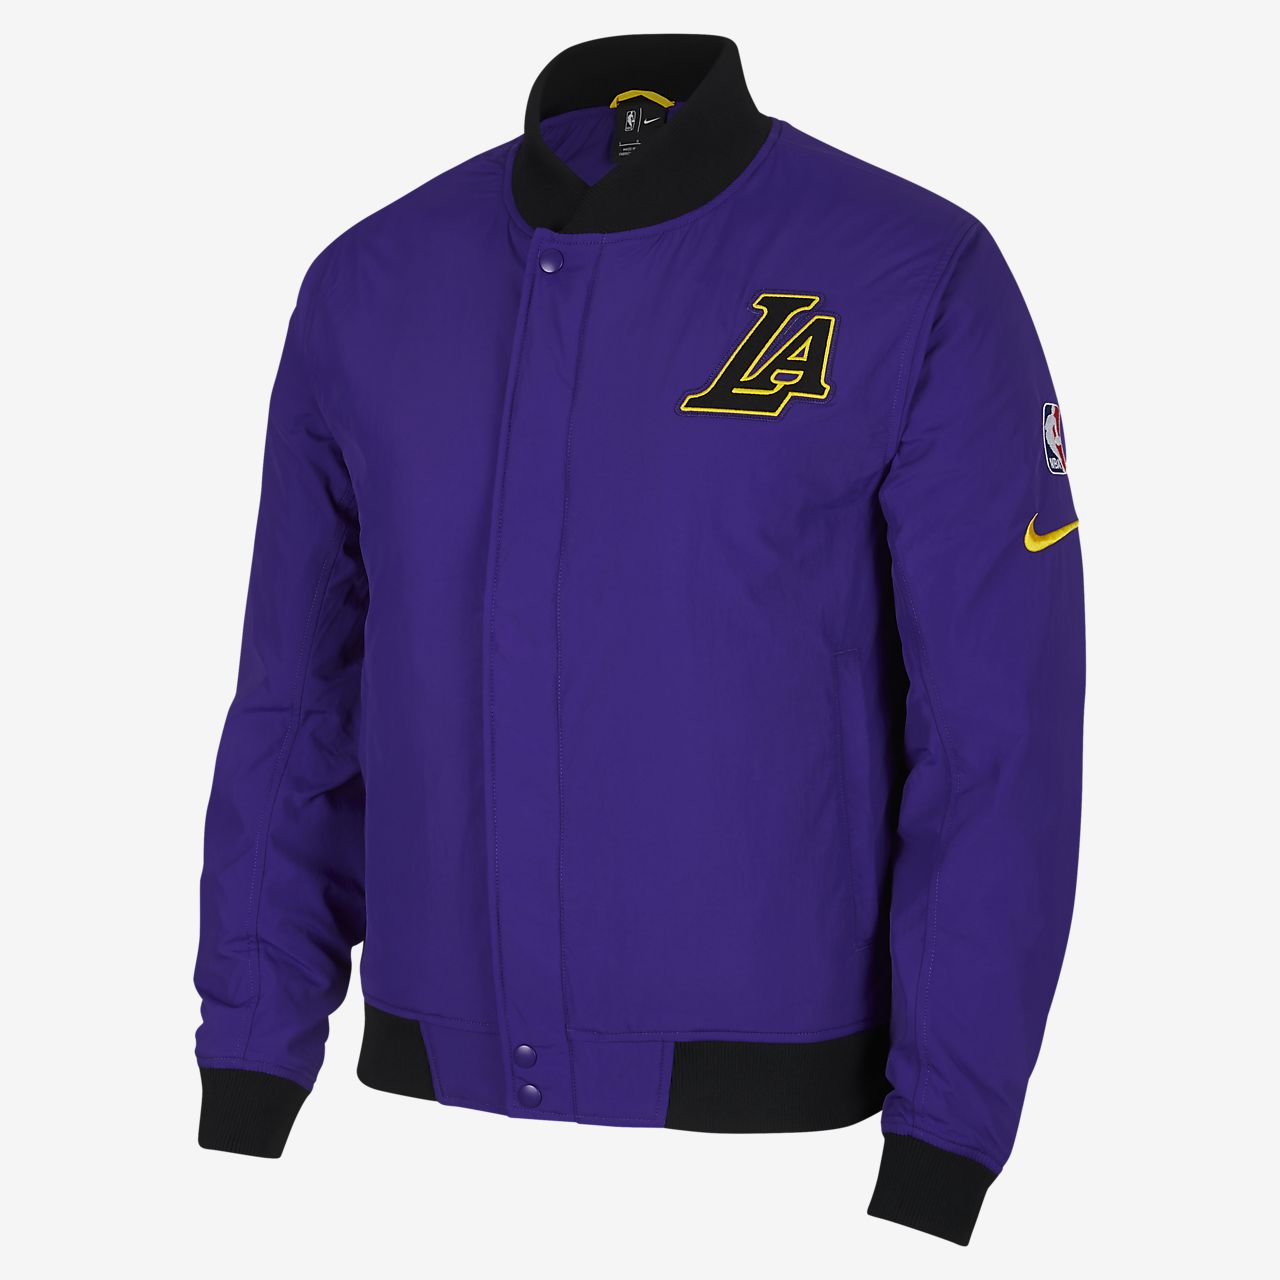 5c78ef7b7 Los Angeles Lakers Nike Courtside Men s NBA Jacket. Nike.com CA